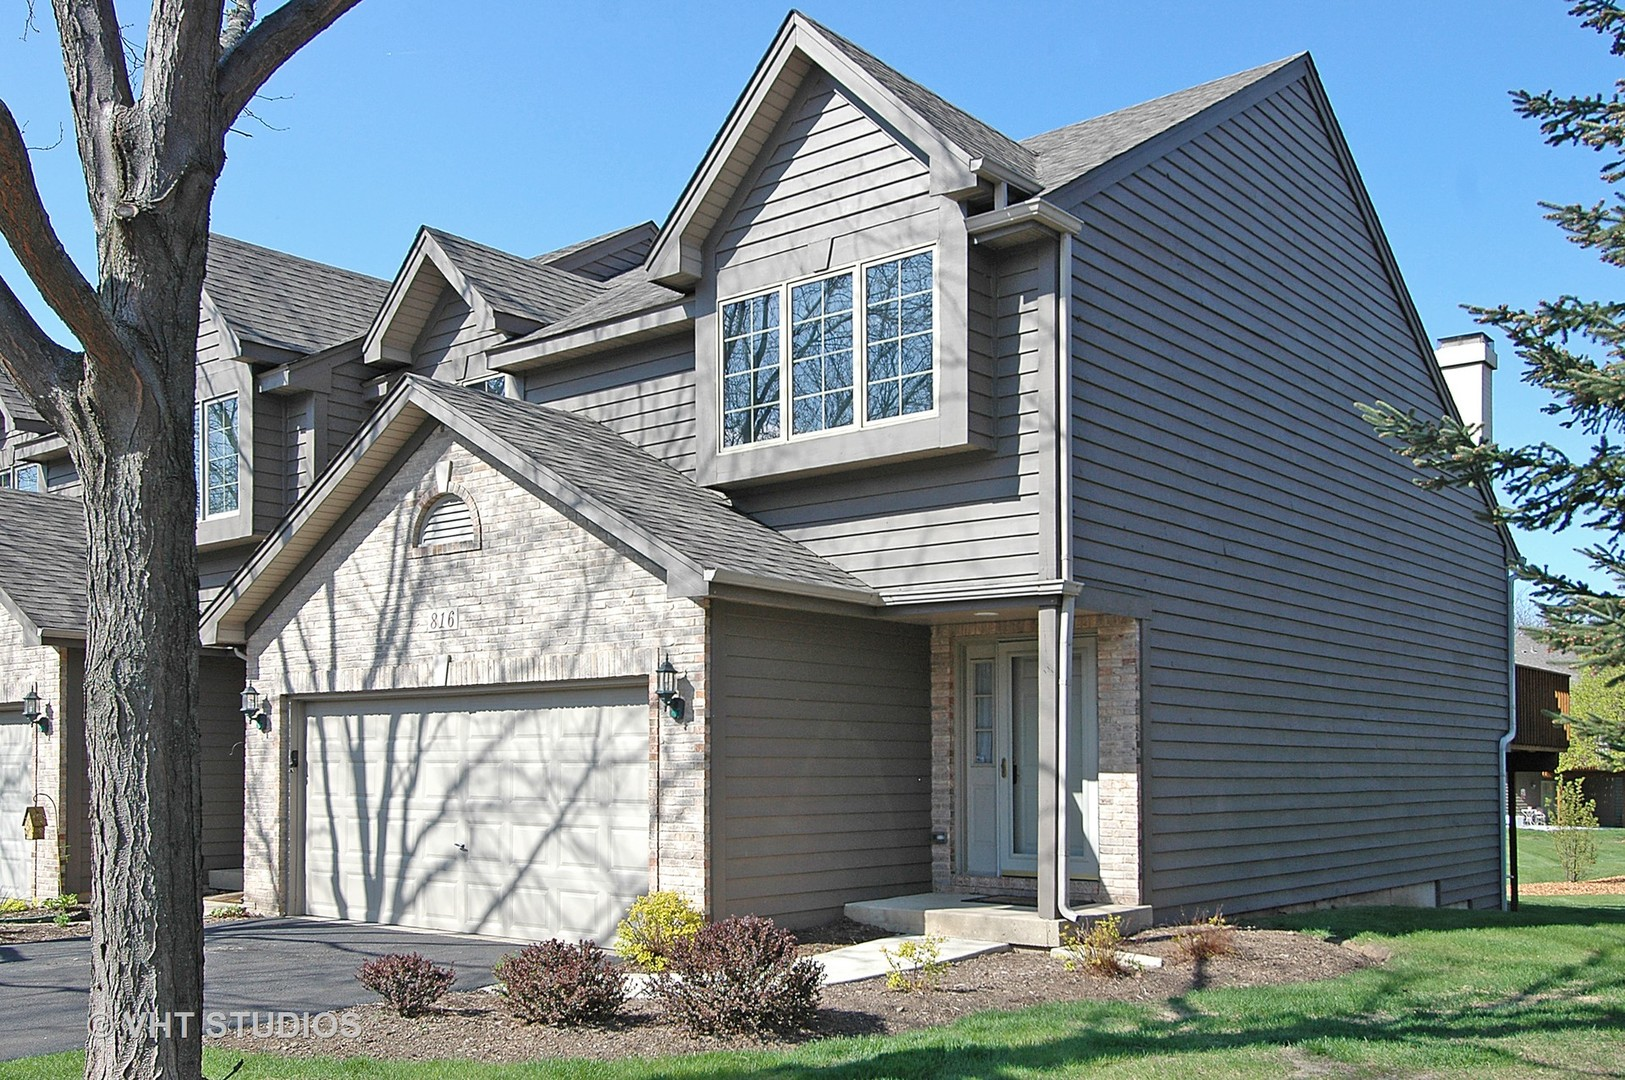 Photo for 816 Millcreek Circle, Elgin, IL 60123 (MLS # 10715650)